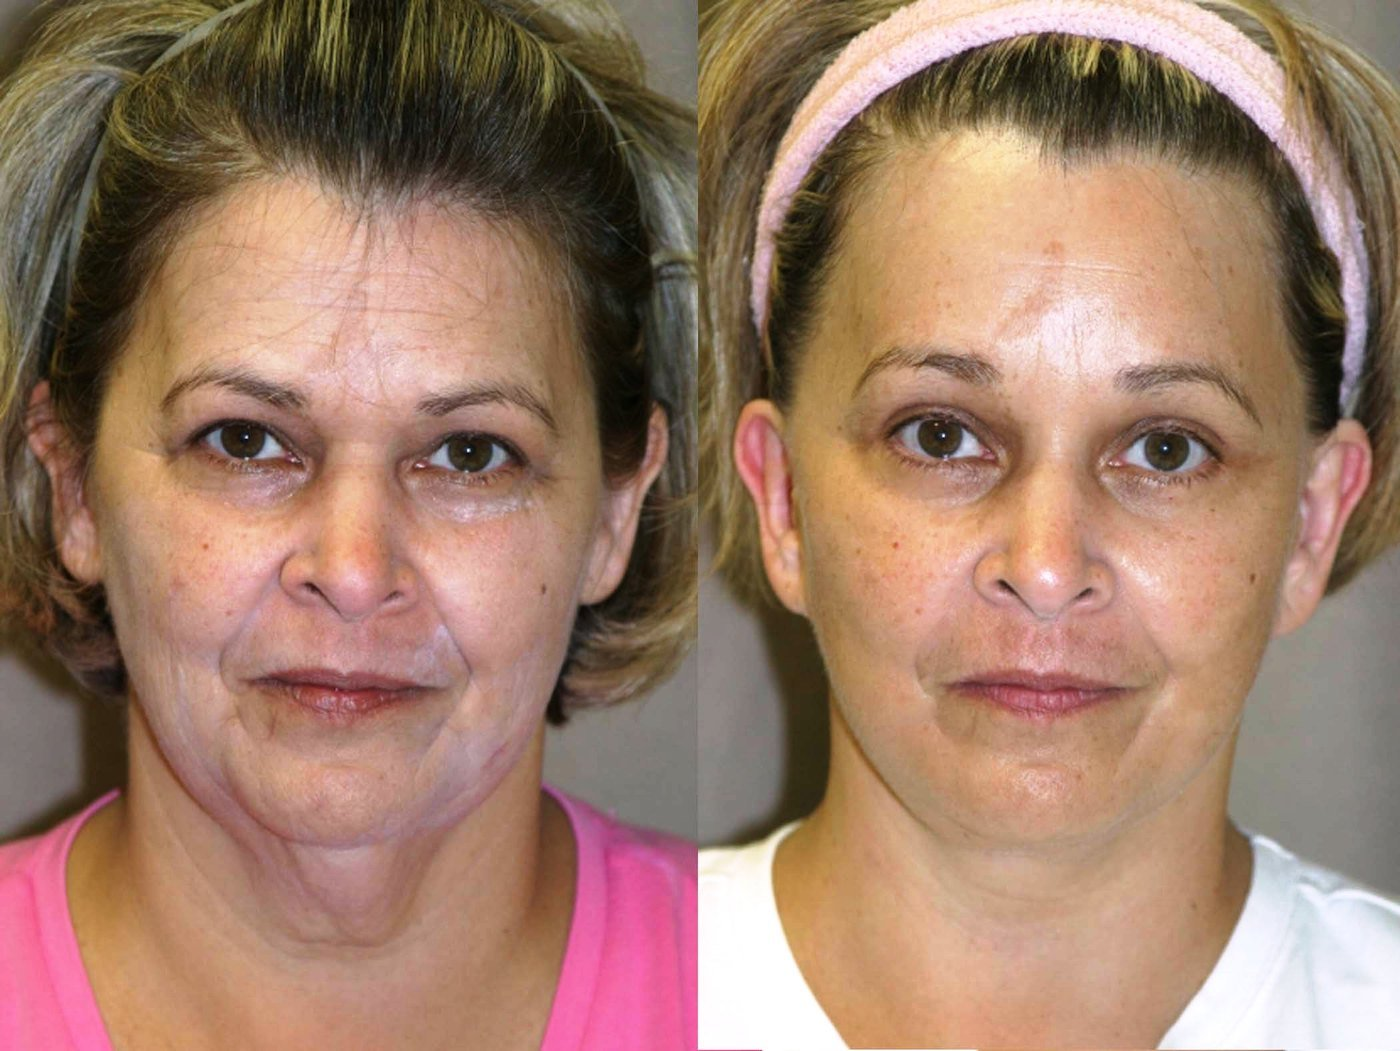 57 year-old, 9 month follow-up after facelift, lower external blepharoplasty with lateral canthoplasty, endoscopic browlift with endotine fixation front view